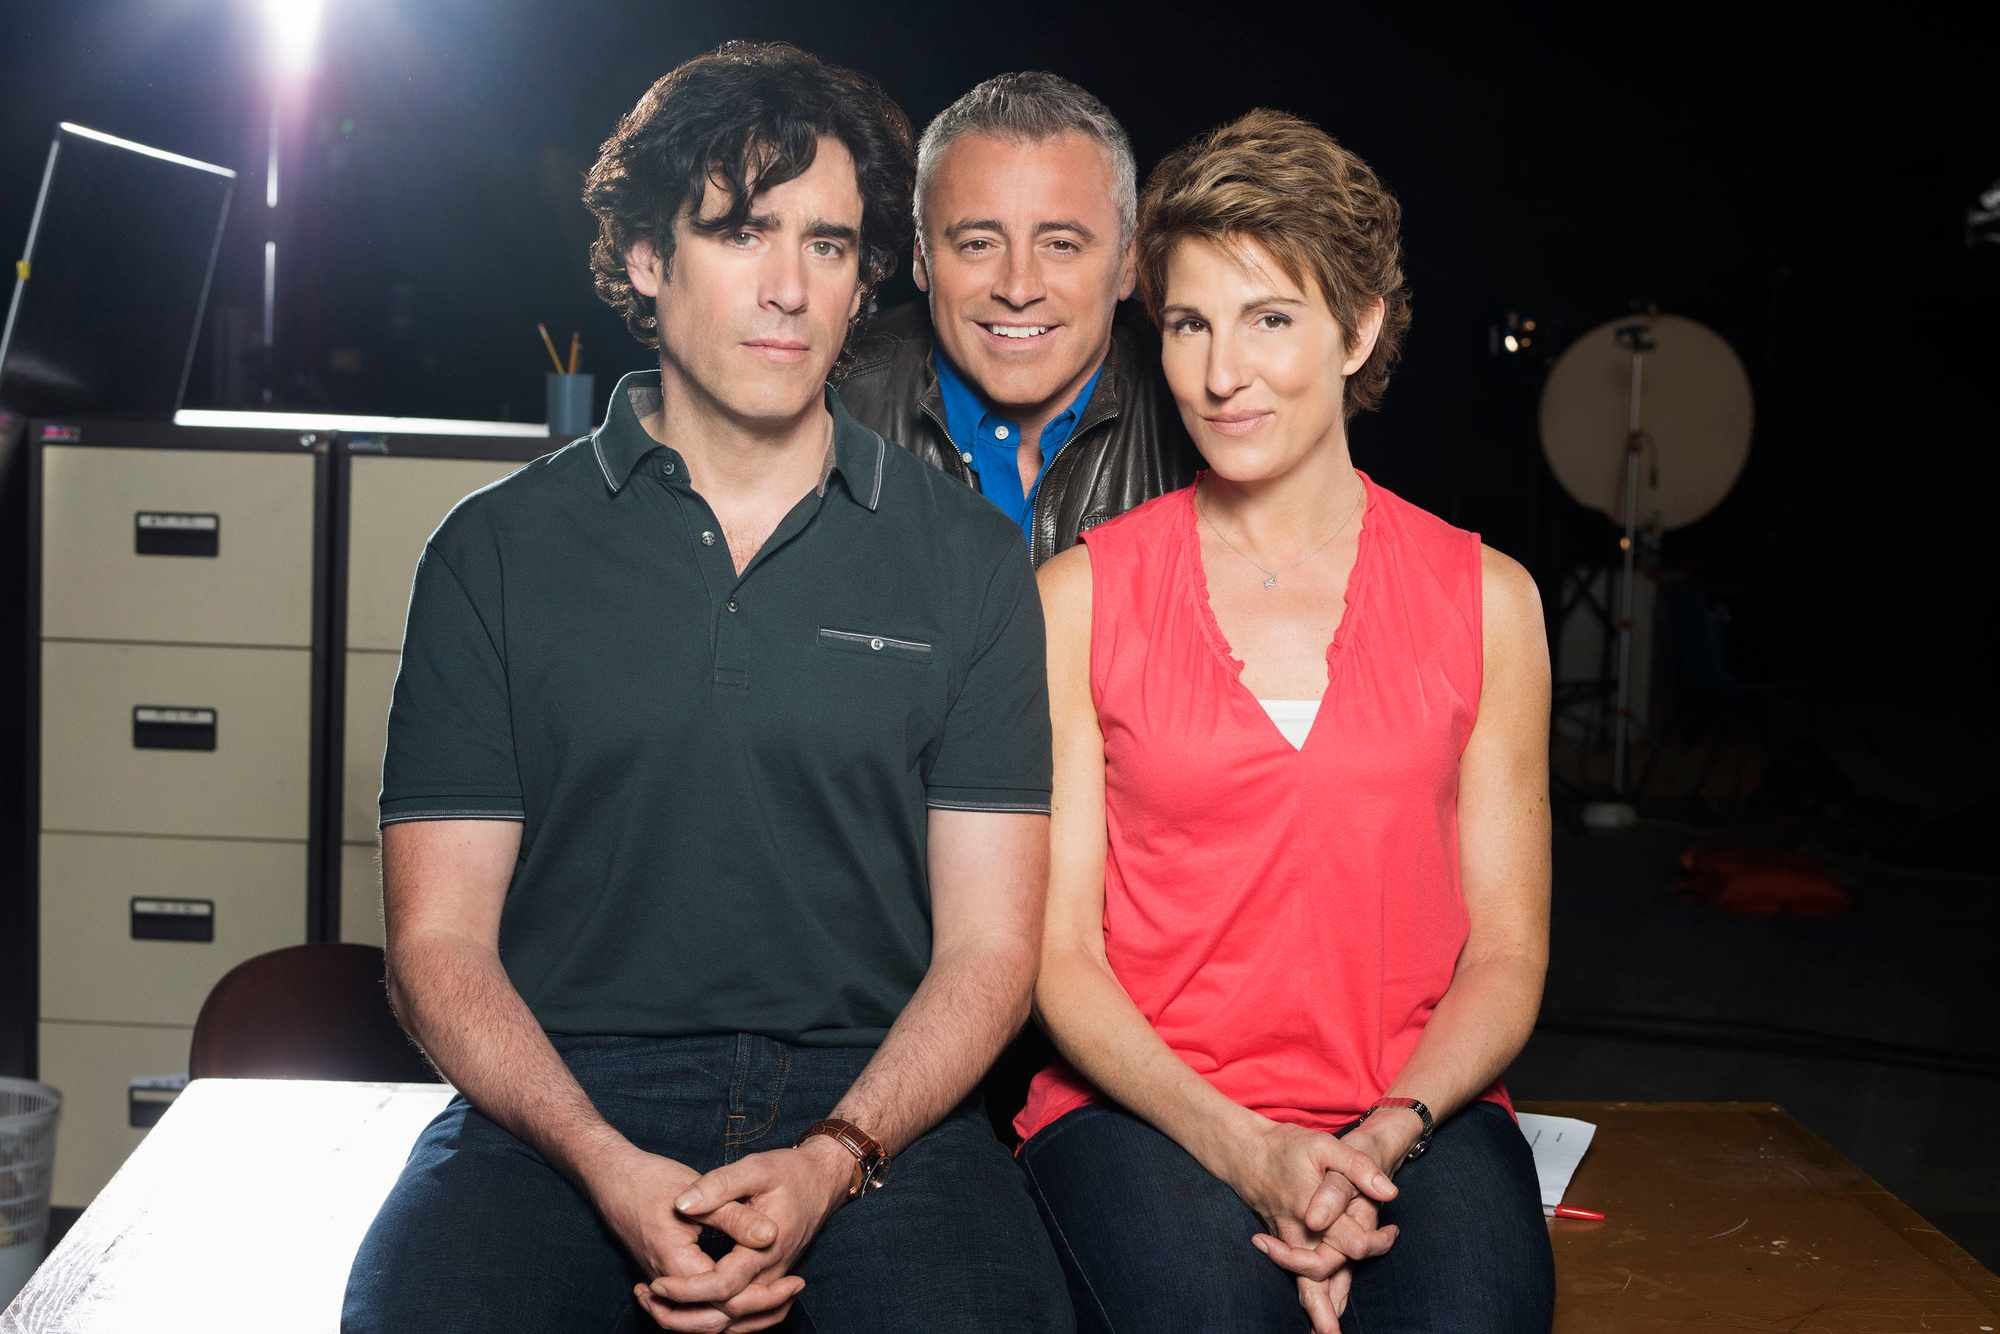 Matt LeBlanc, Stephen Mangan, and Tamsin Greig in Episodes